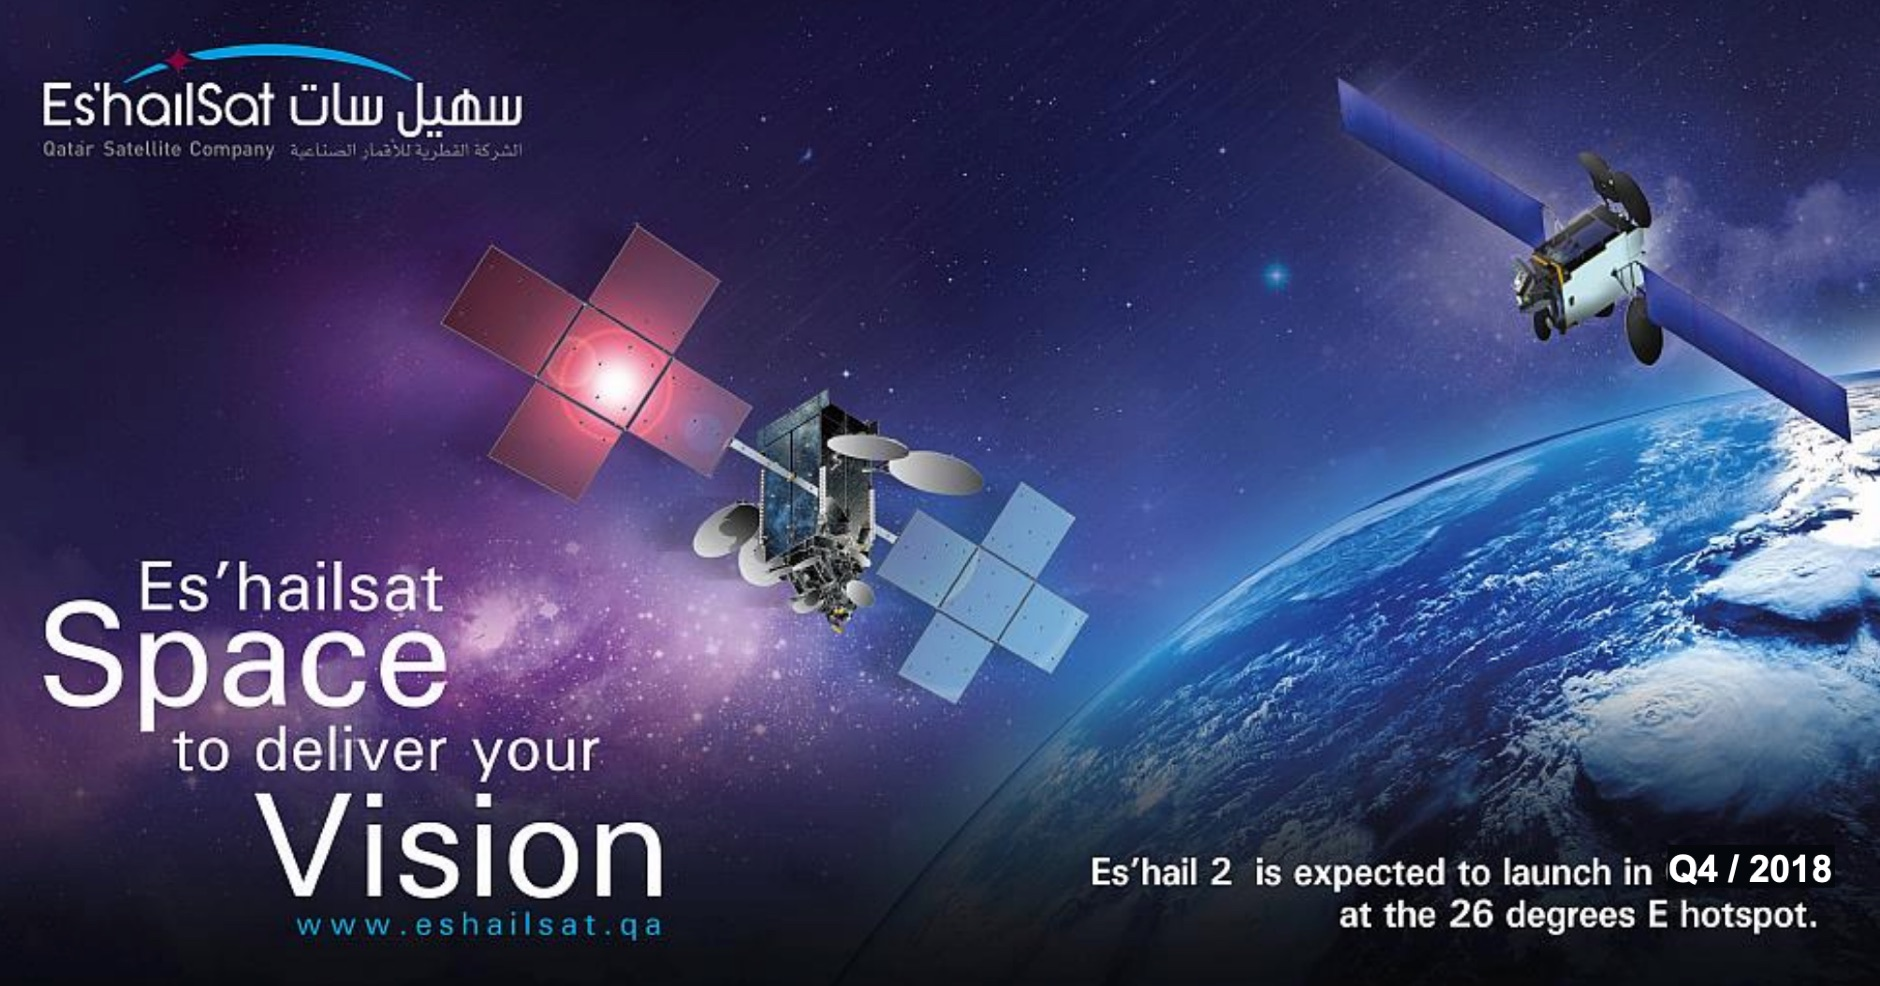 QO-100: Quatar Oscar 100 Geostationary Satellite